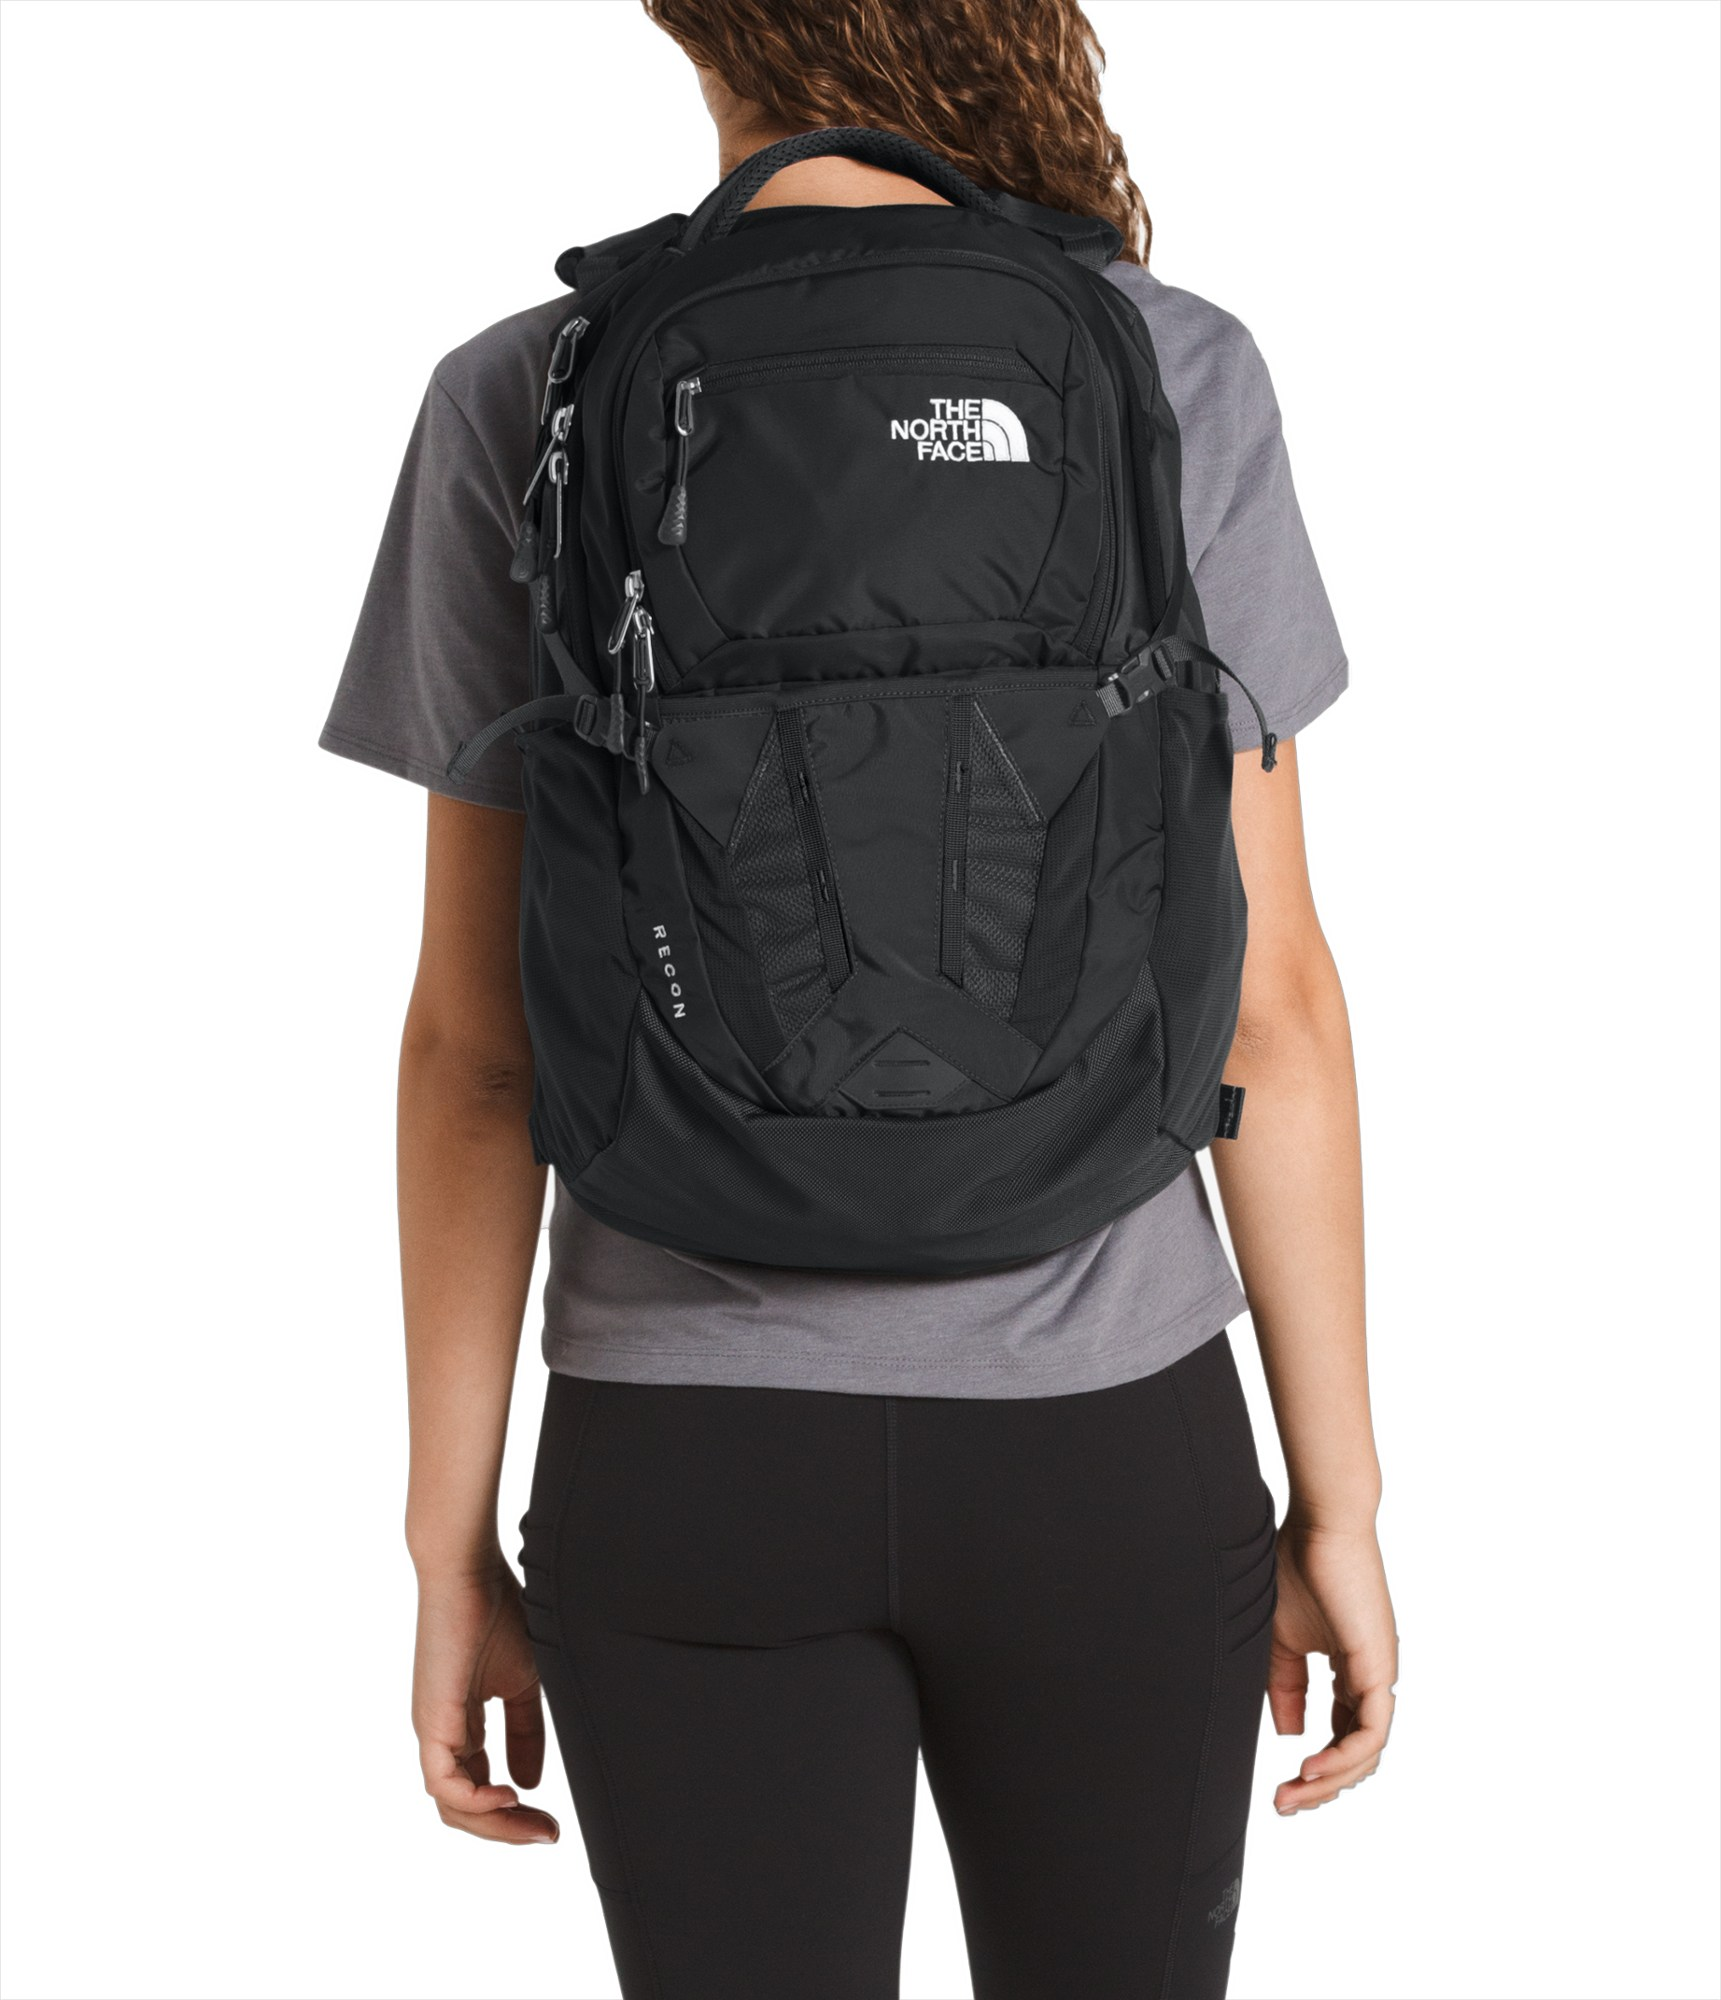 The North Face Recon Pack - Women's